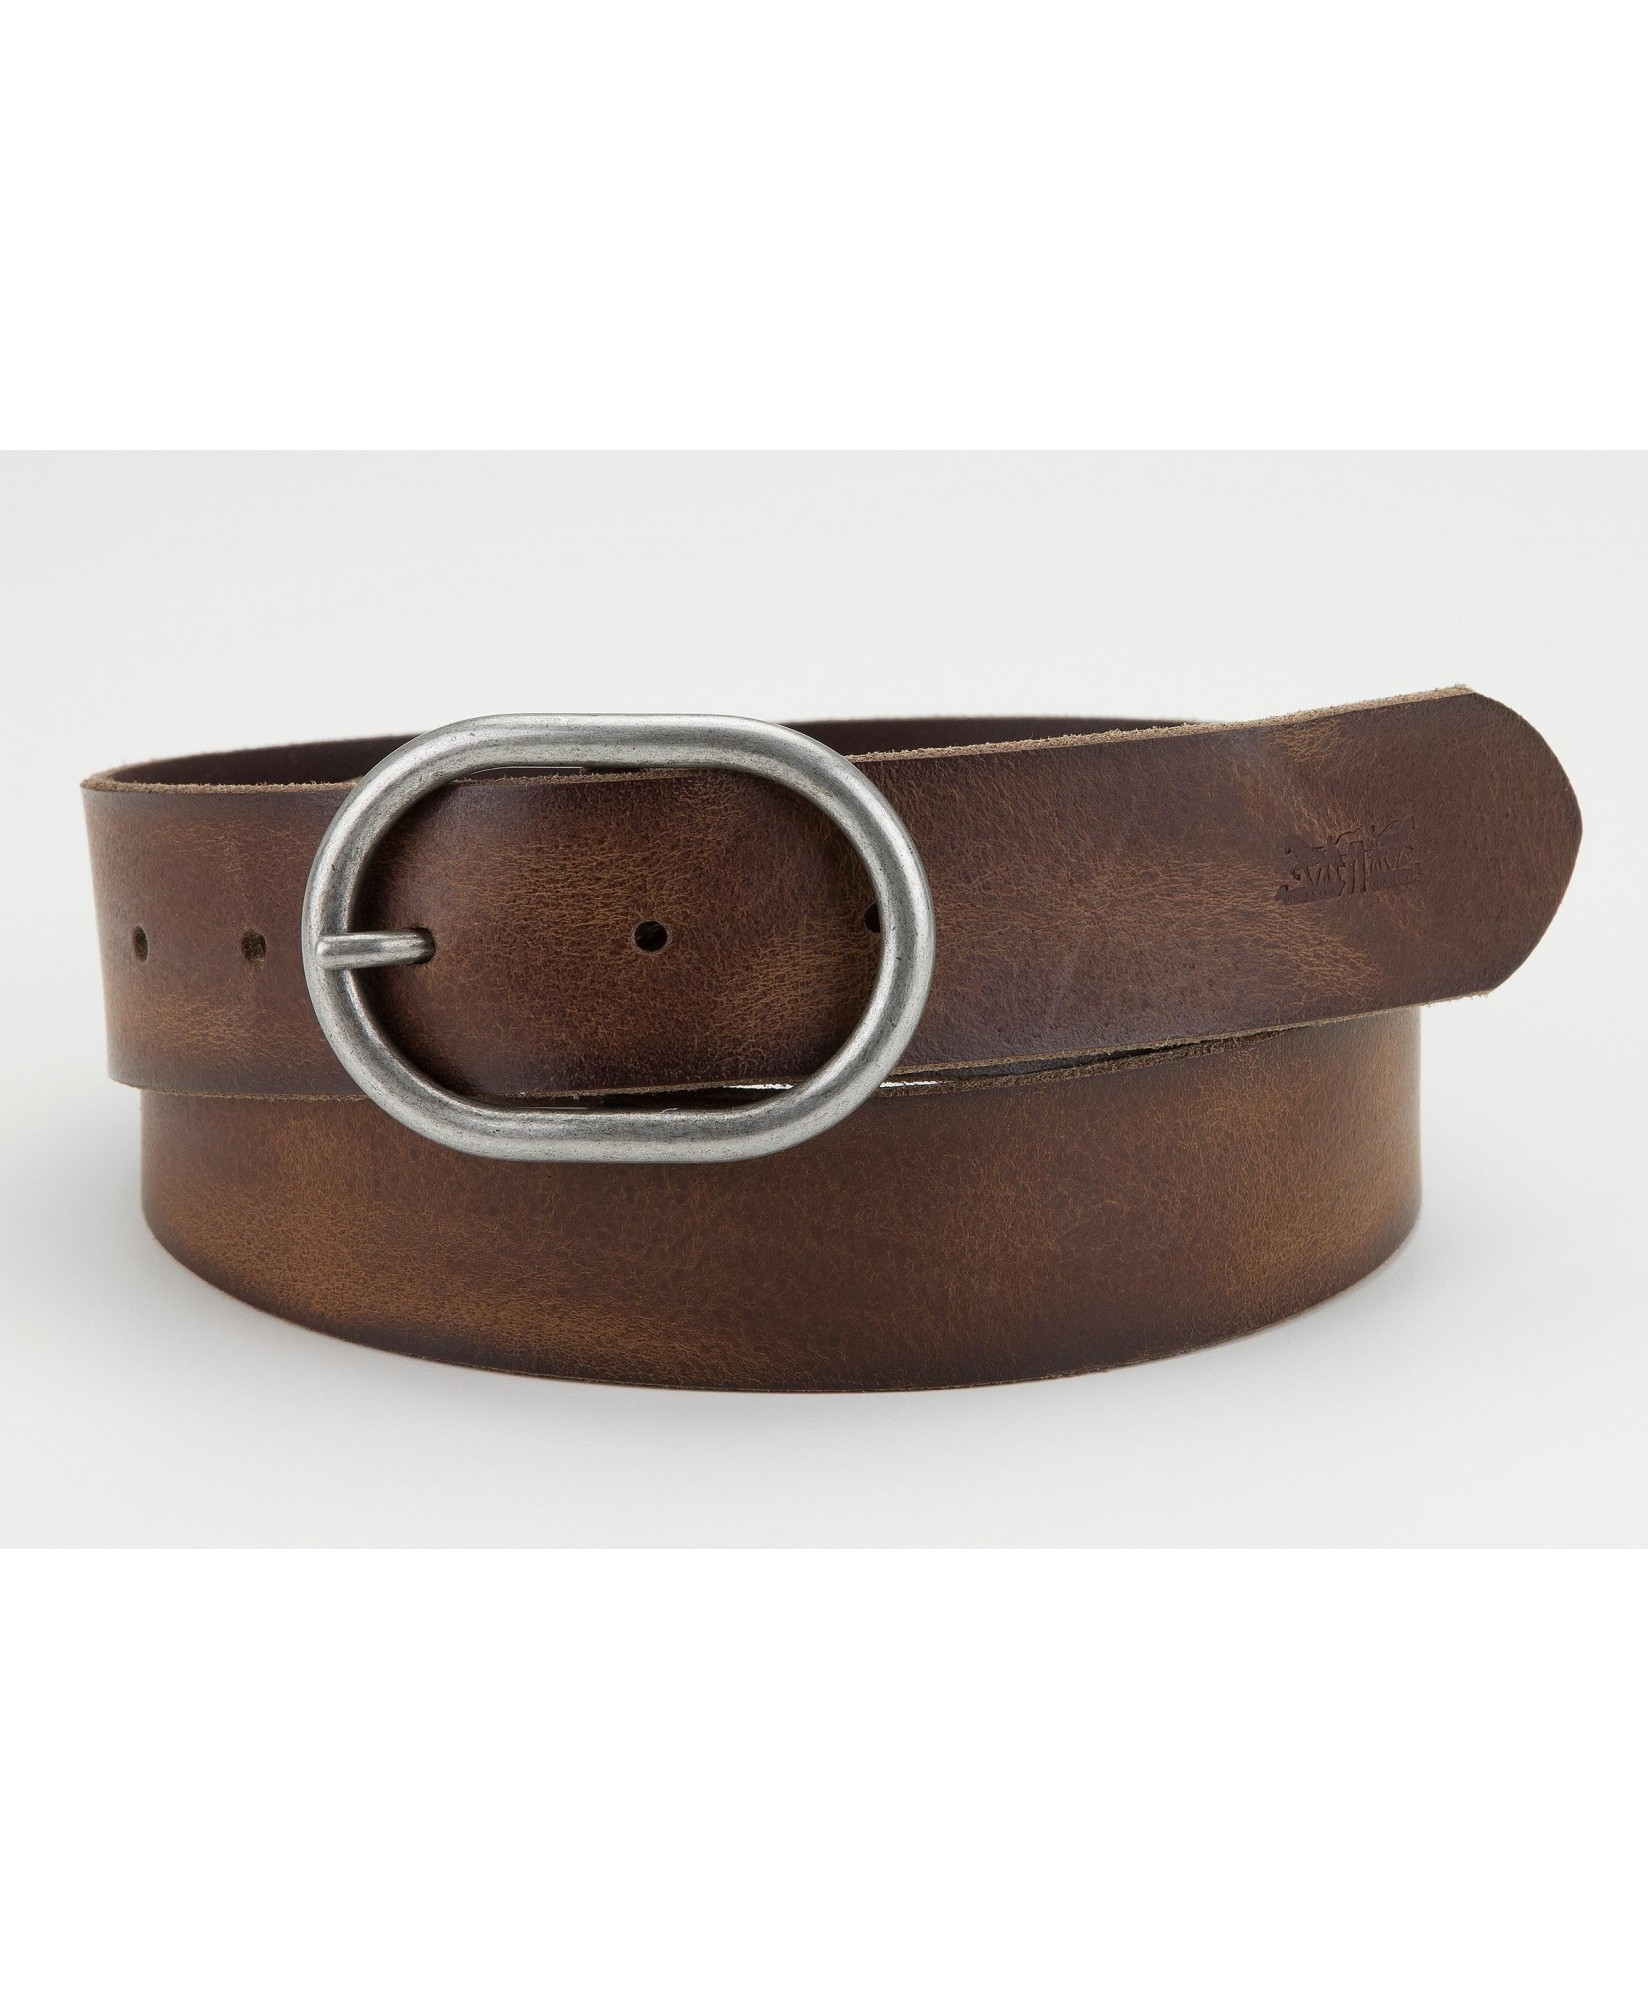 CIRCLE BUCKLE CORE CIRCLE BUCKLE CORE